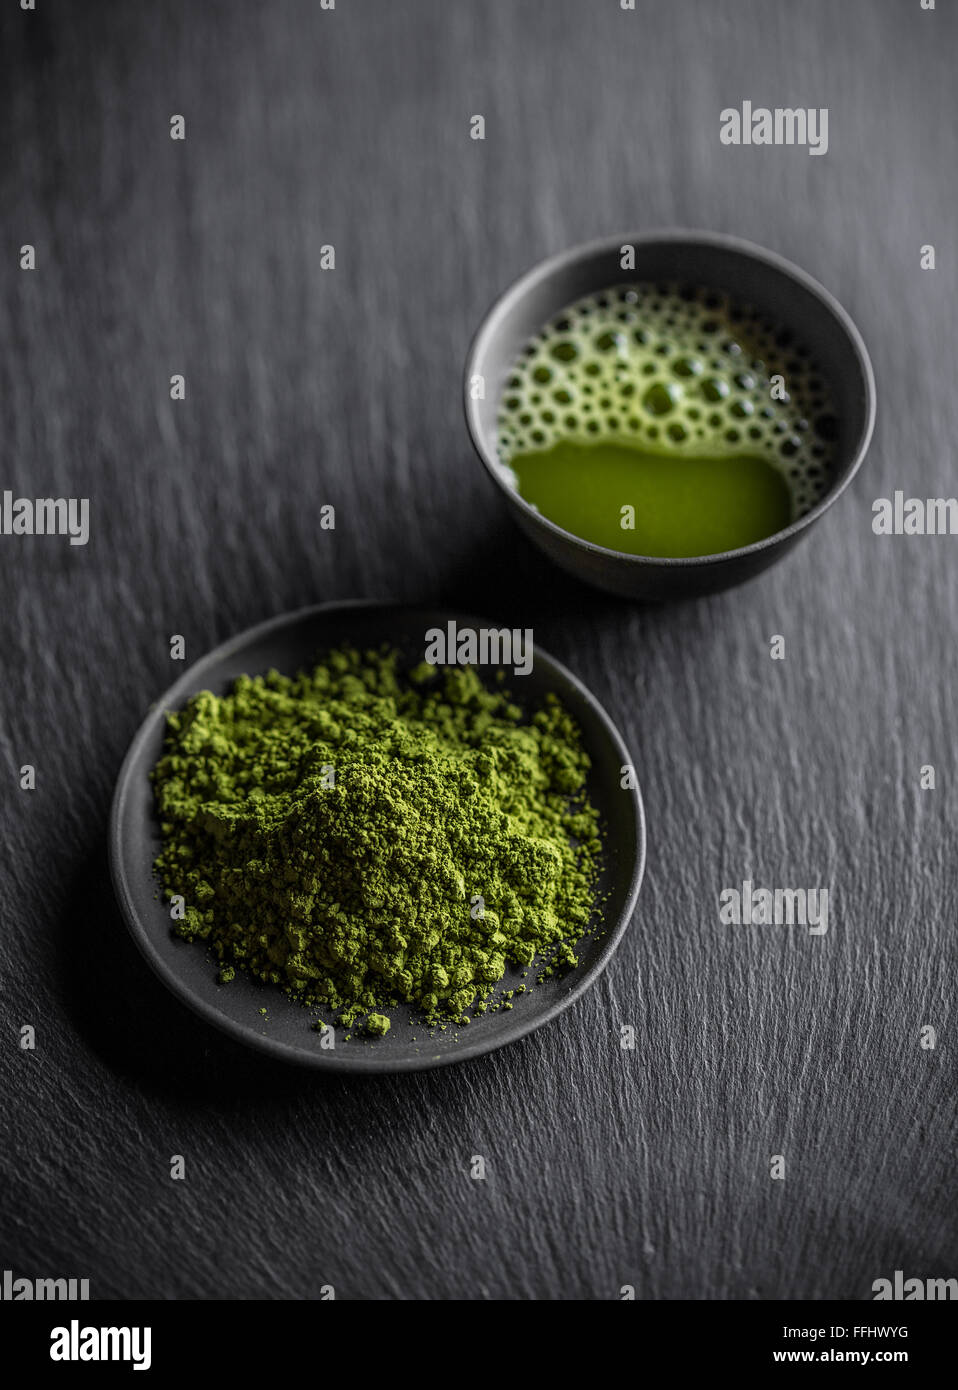 Matcha fine powdered green tea - Stock Image